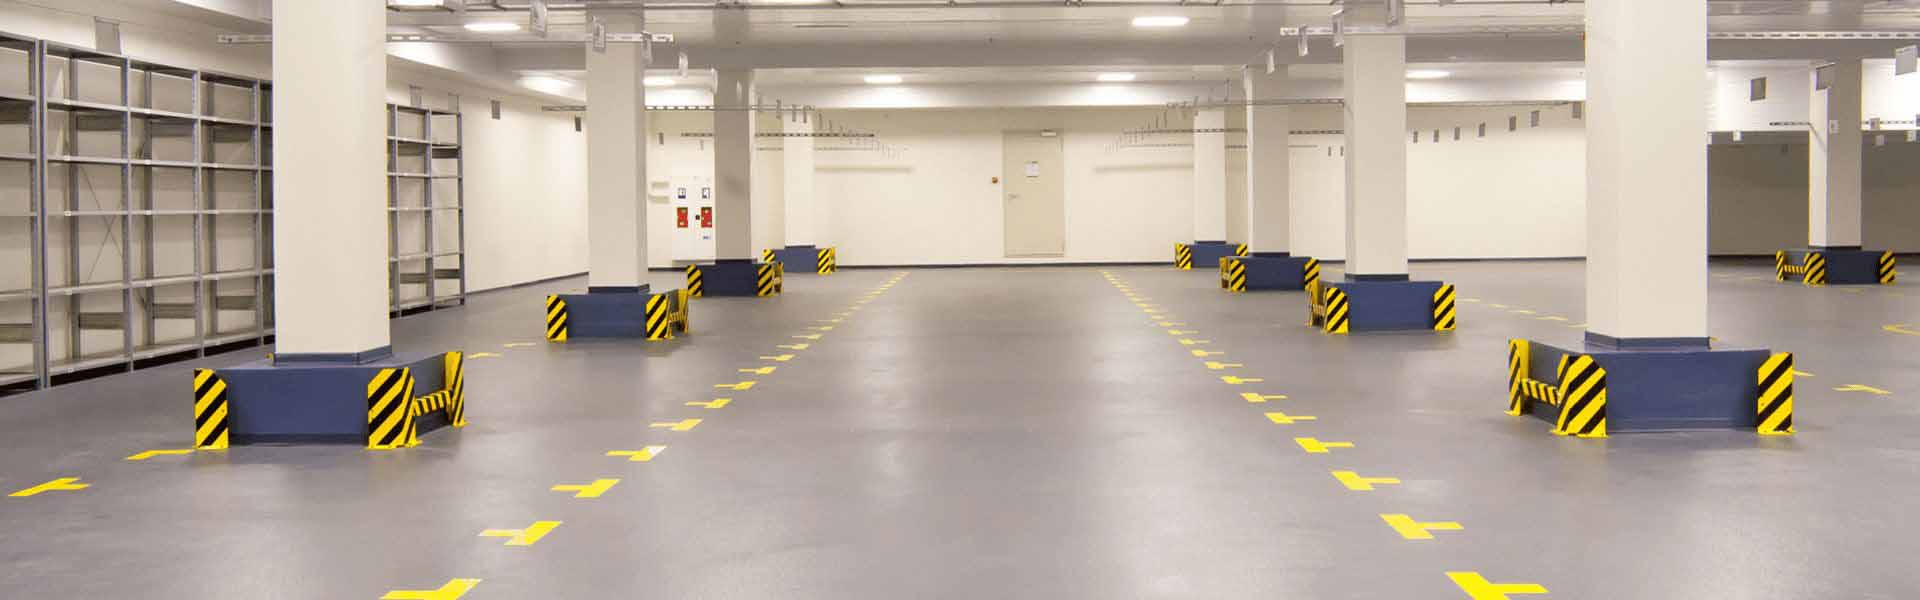 flooring with safety markings